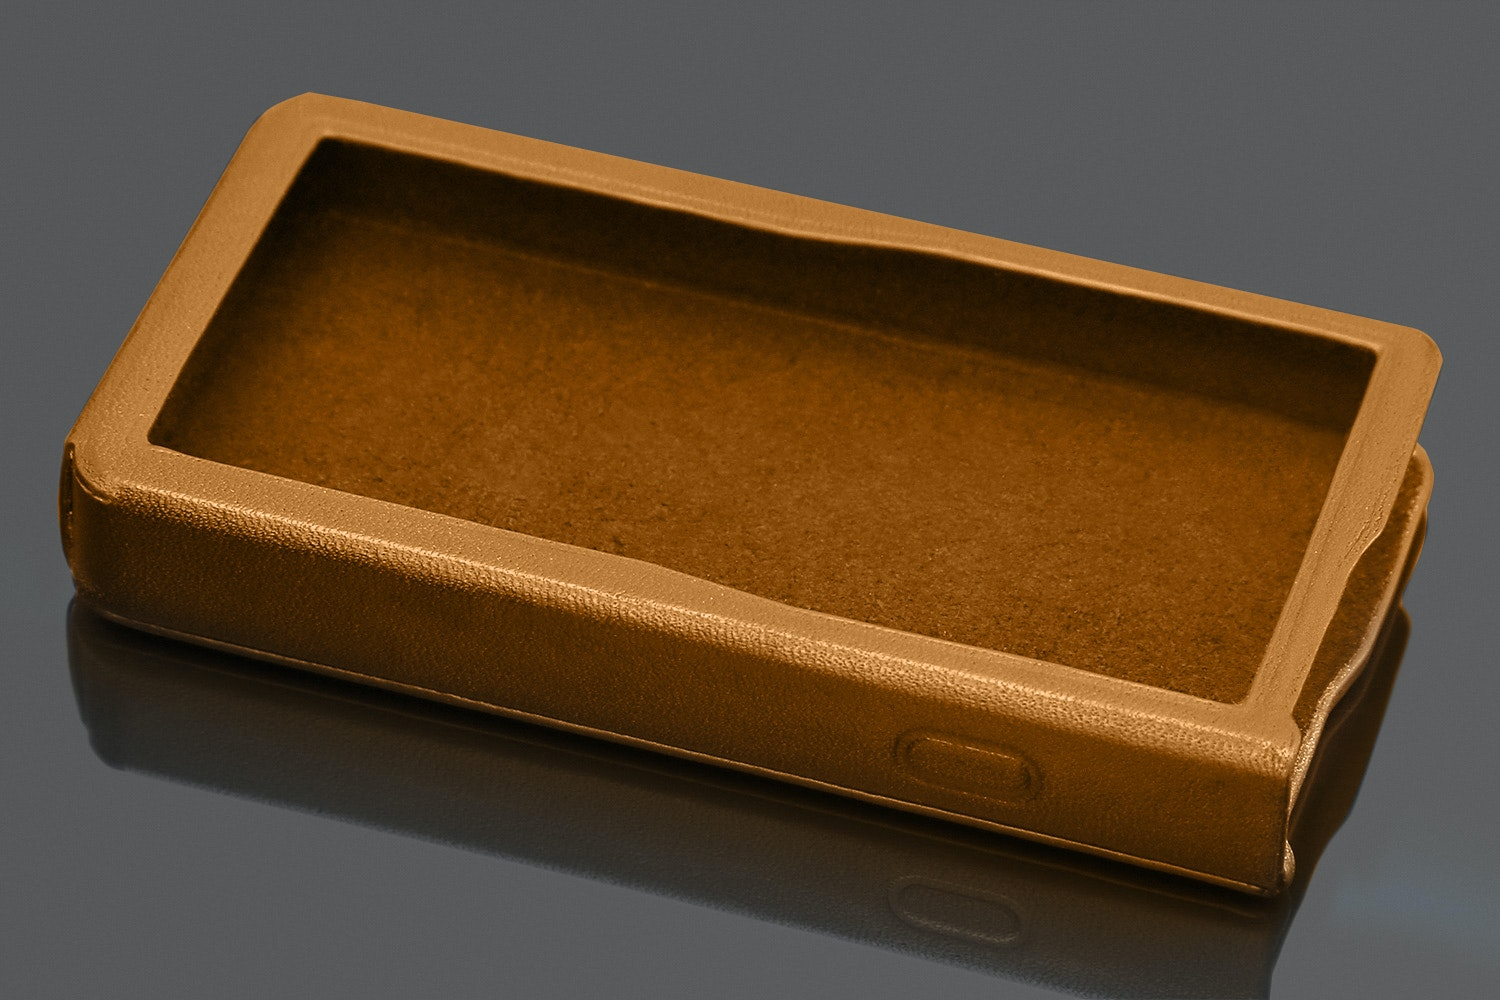 Gold Leather Case (+ $50)